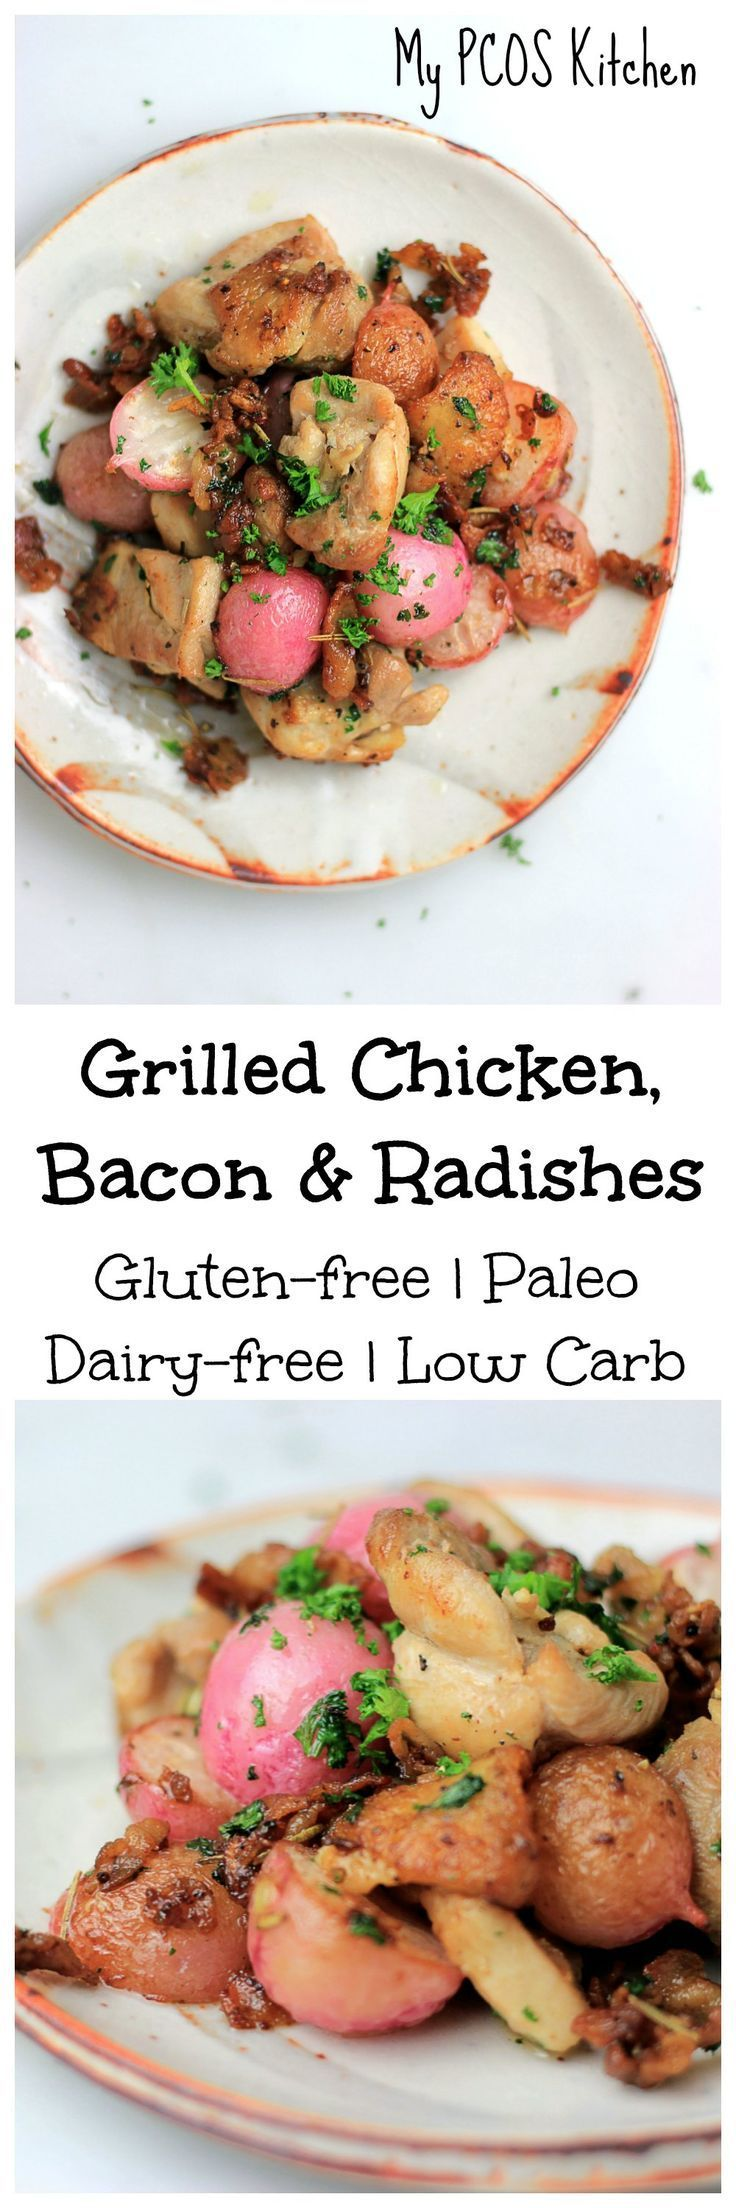 My PCOS Kitchen - Grilled Chicken, Bacon & Radishes - A delicious ...